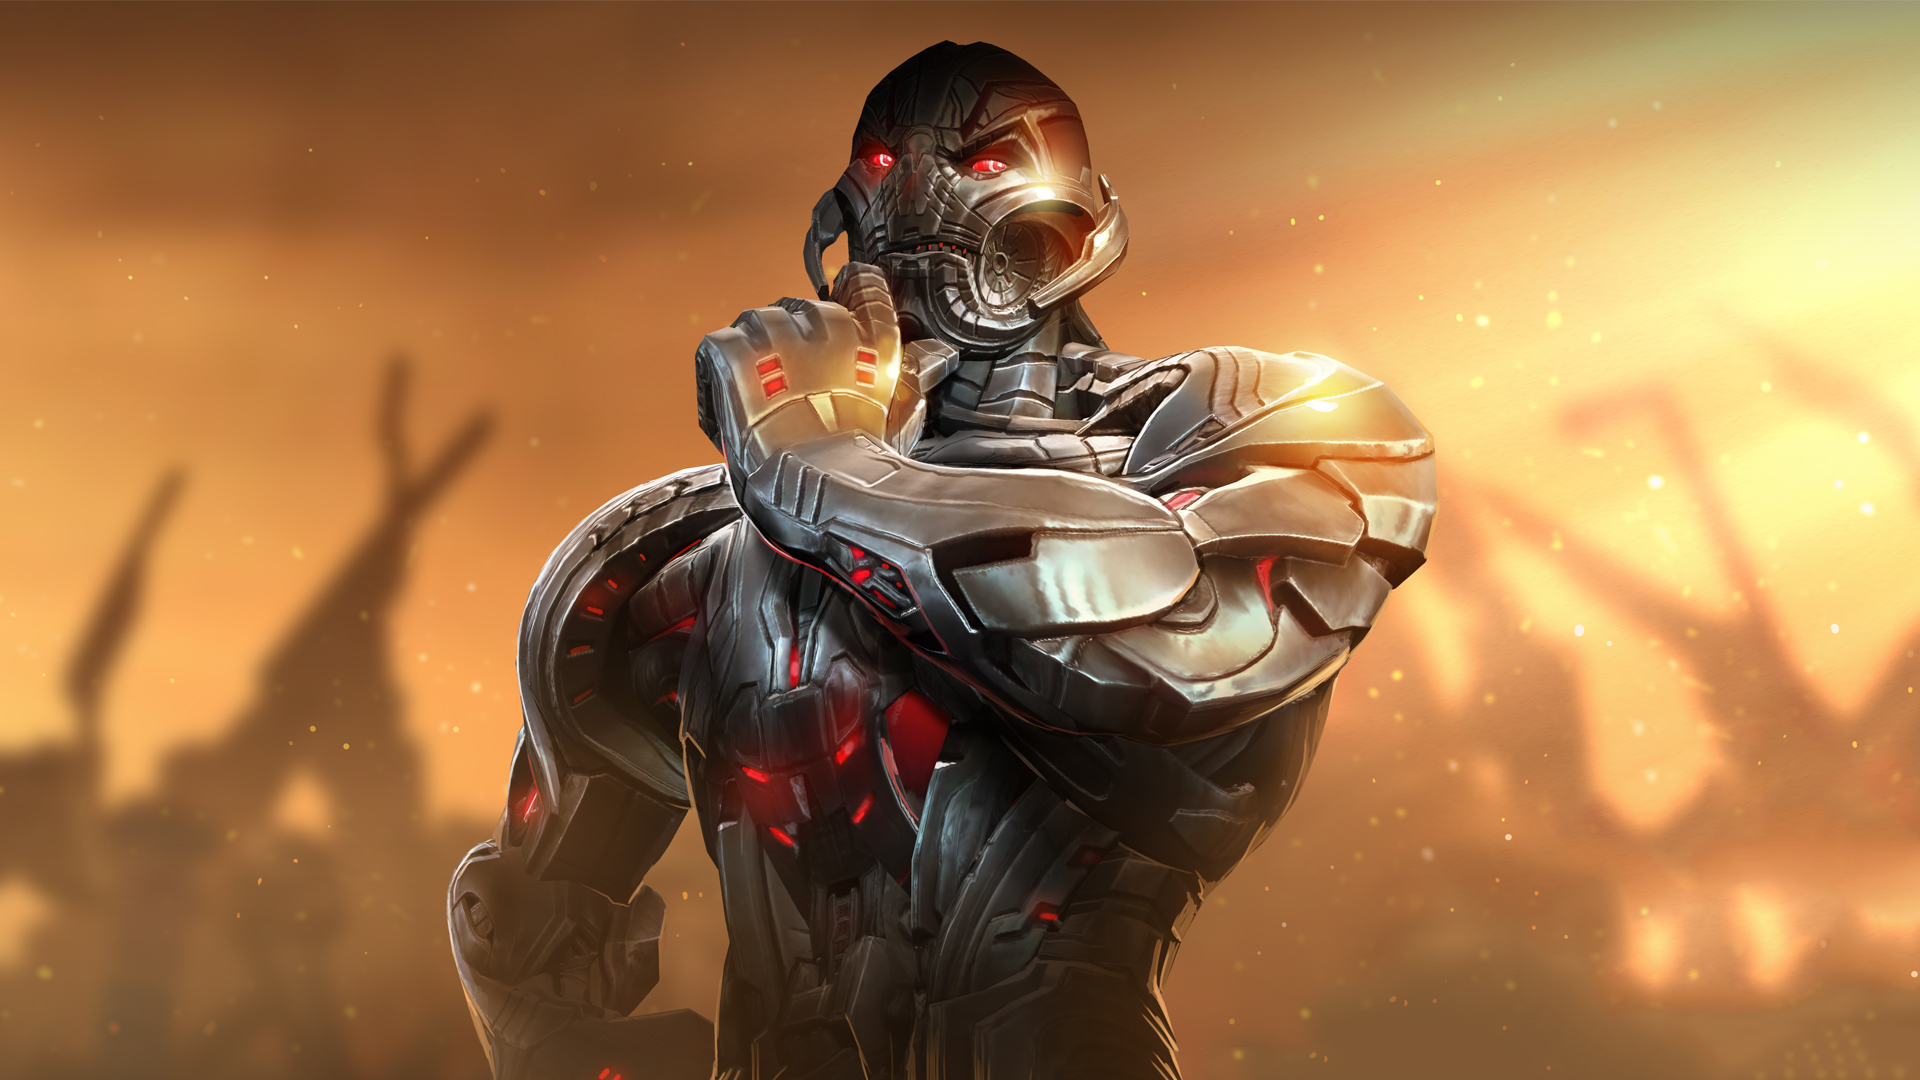 Ultron marvel contest of champions hd games 4k wallpapers images backgrounds photos and - Marvel hd wallpapers 4k ...